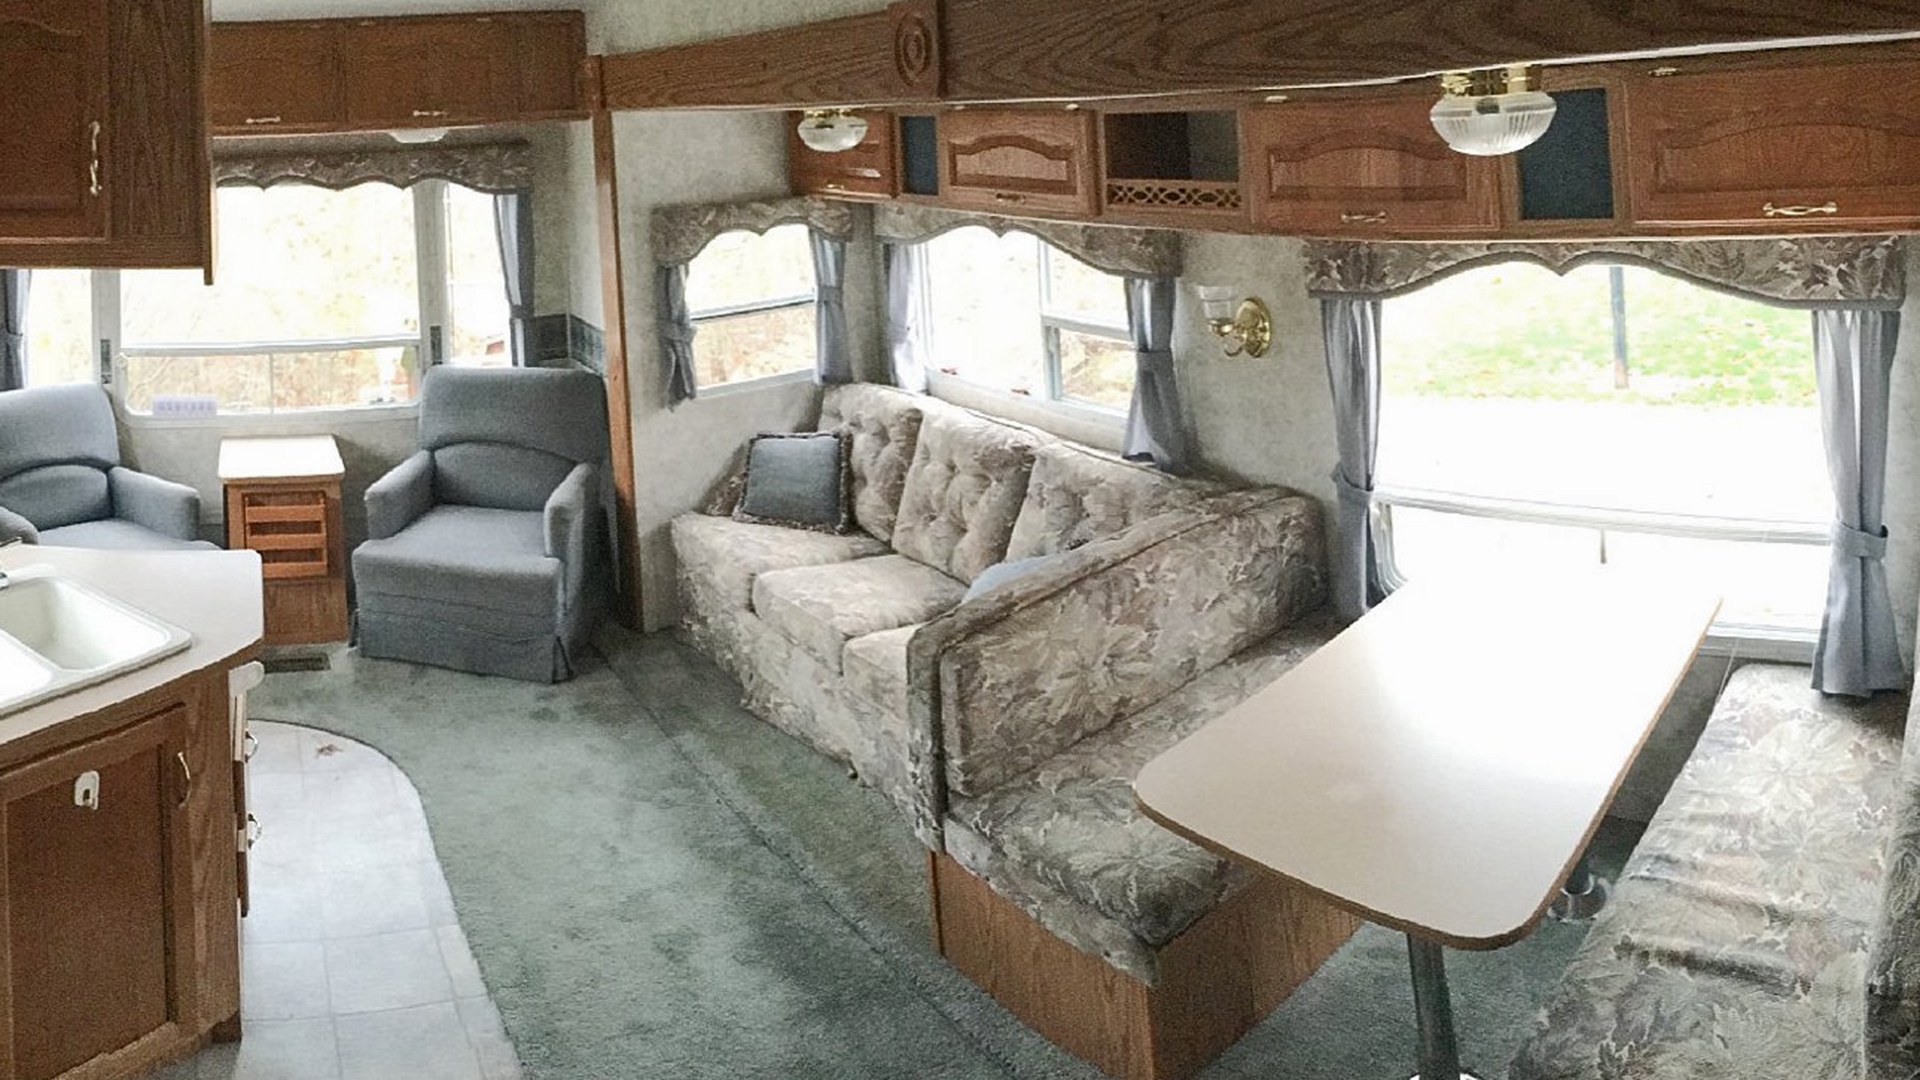 RV home makeover: See the before and after